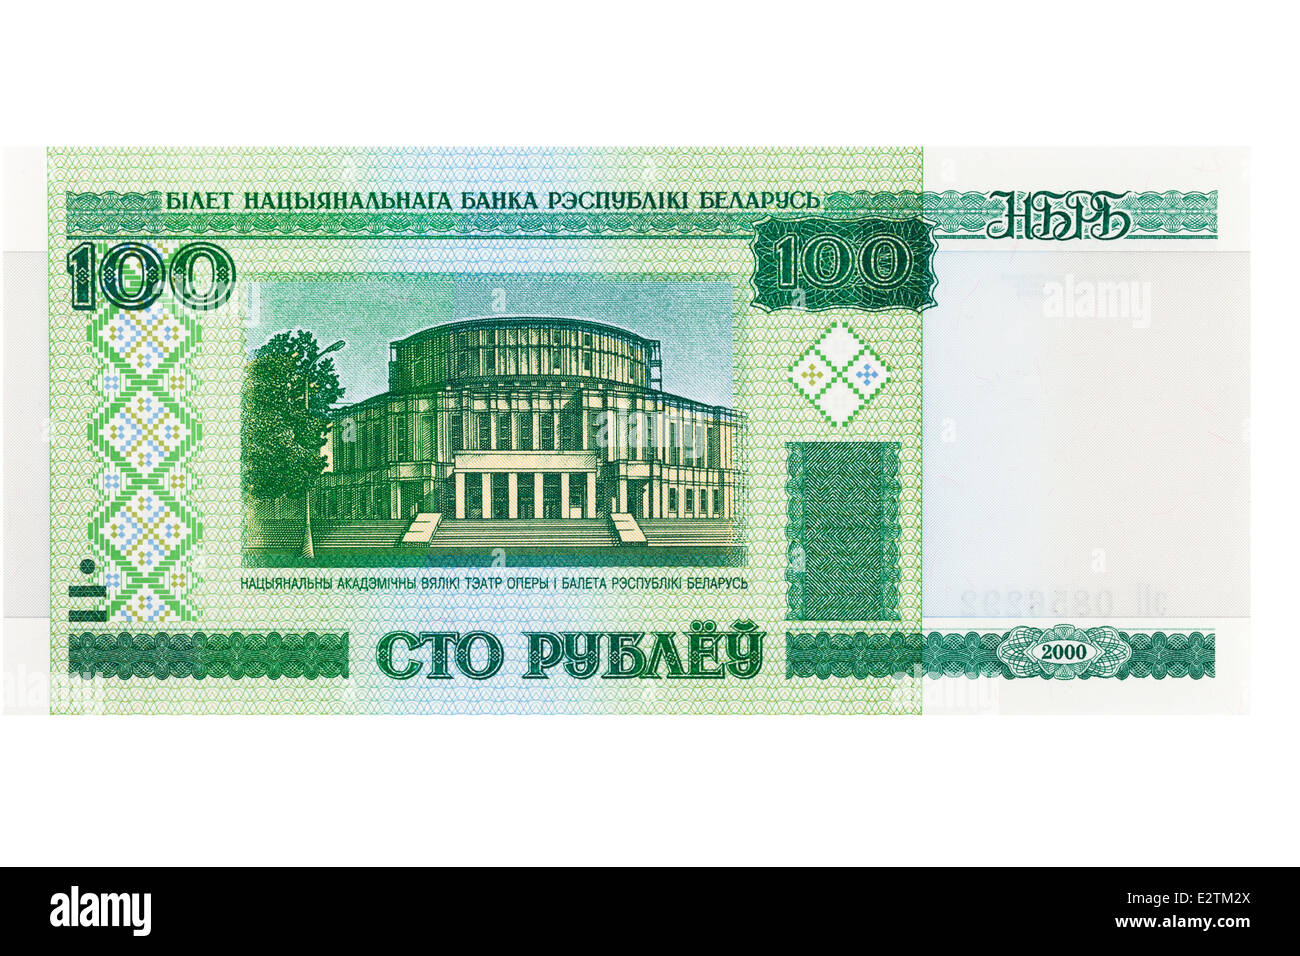 Belorussian one hundred ruble banknote on a white background - Stock Image